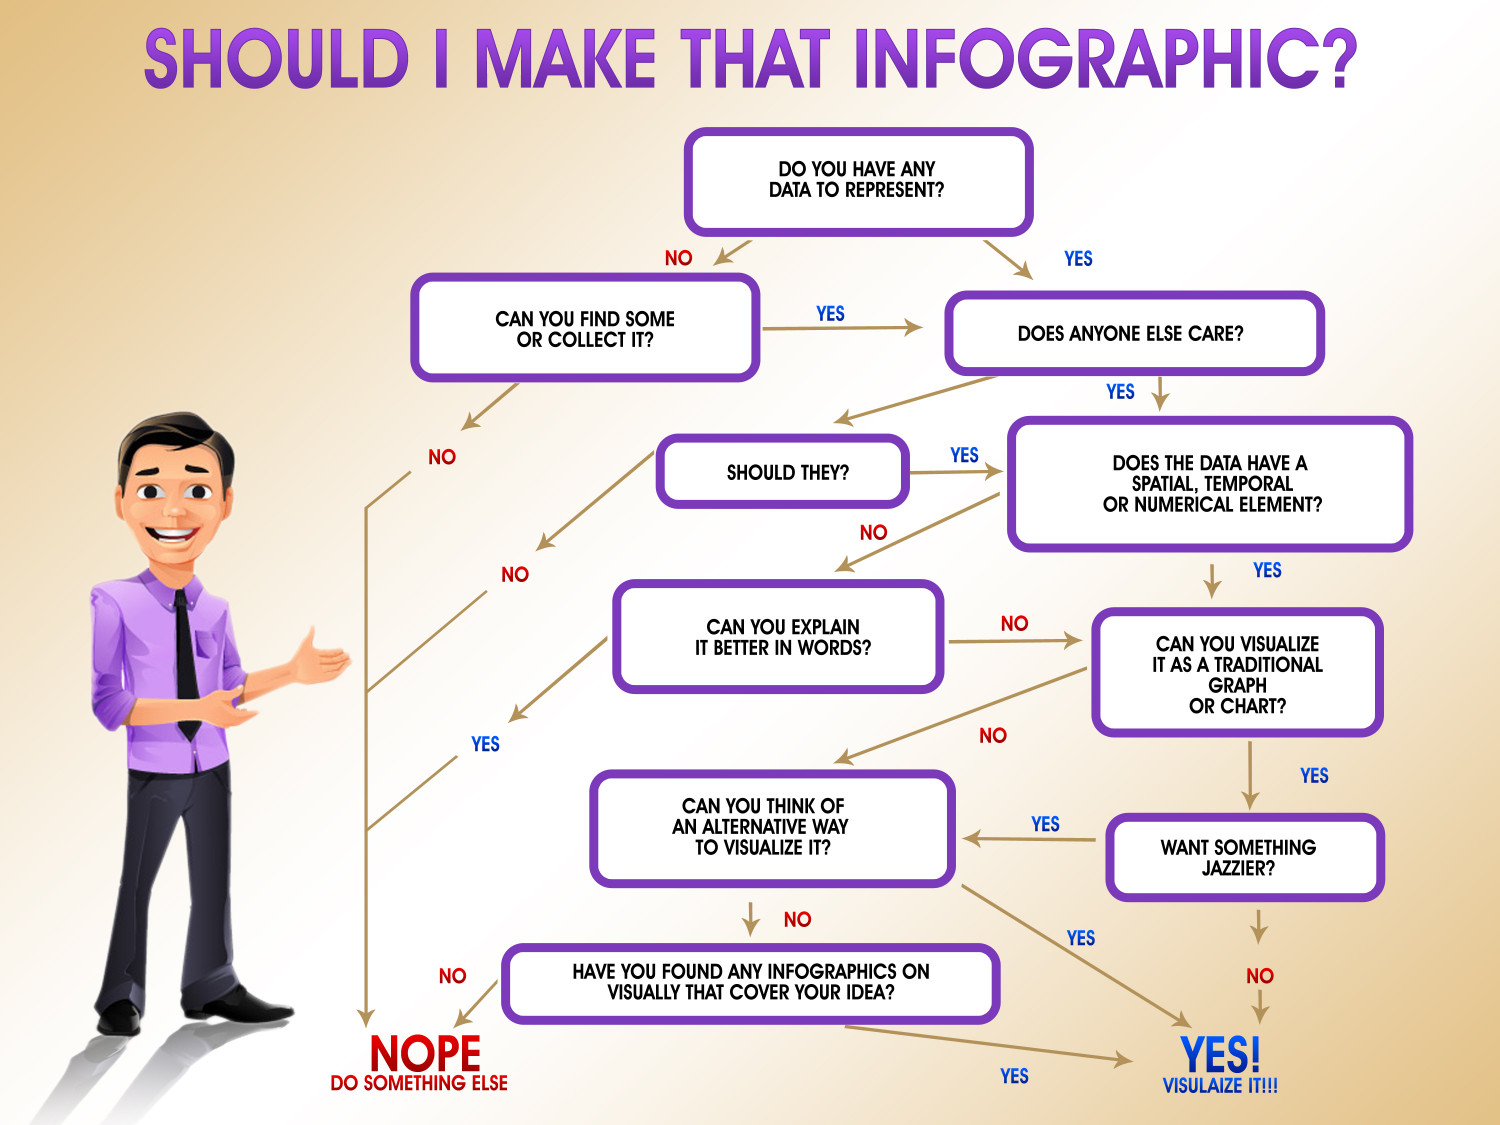 Should I Make That Infographic? Infographic